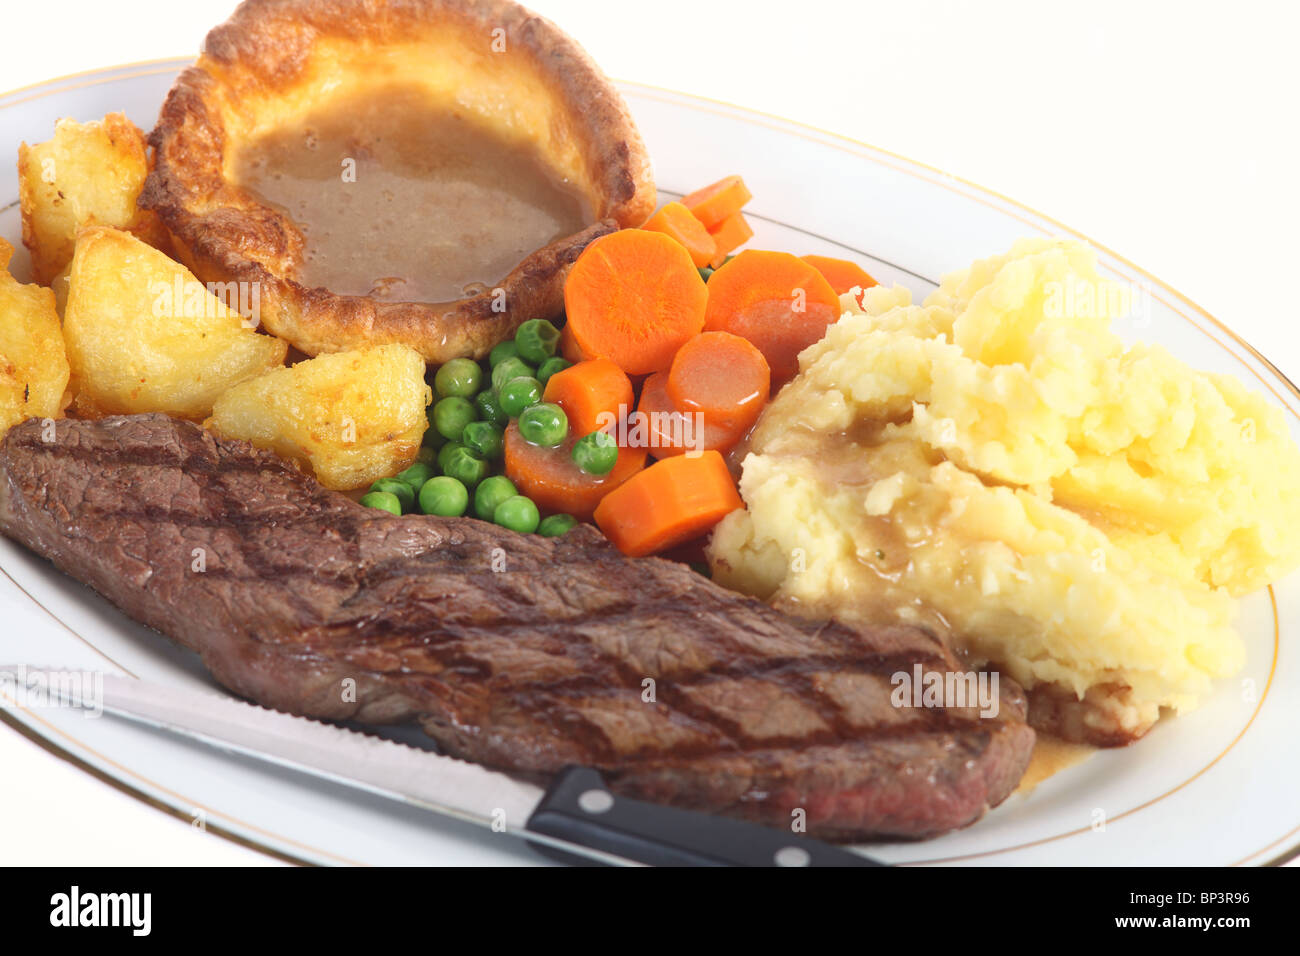 A 'pub-grub' style dinner of steak, mixed veg, roasted and mashed potatoes, yorkshire pudding and gravy, - Stock Image